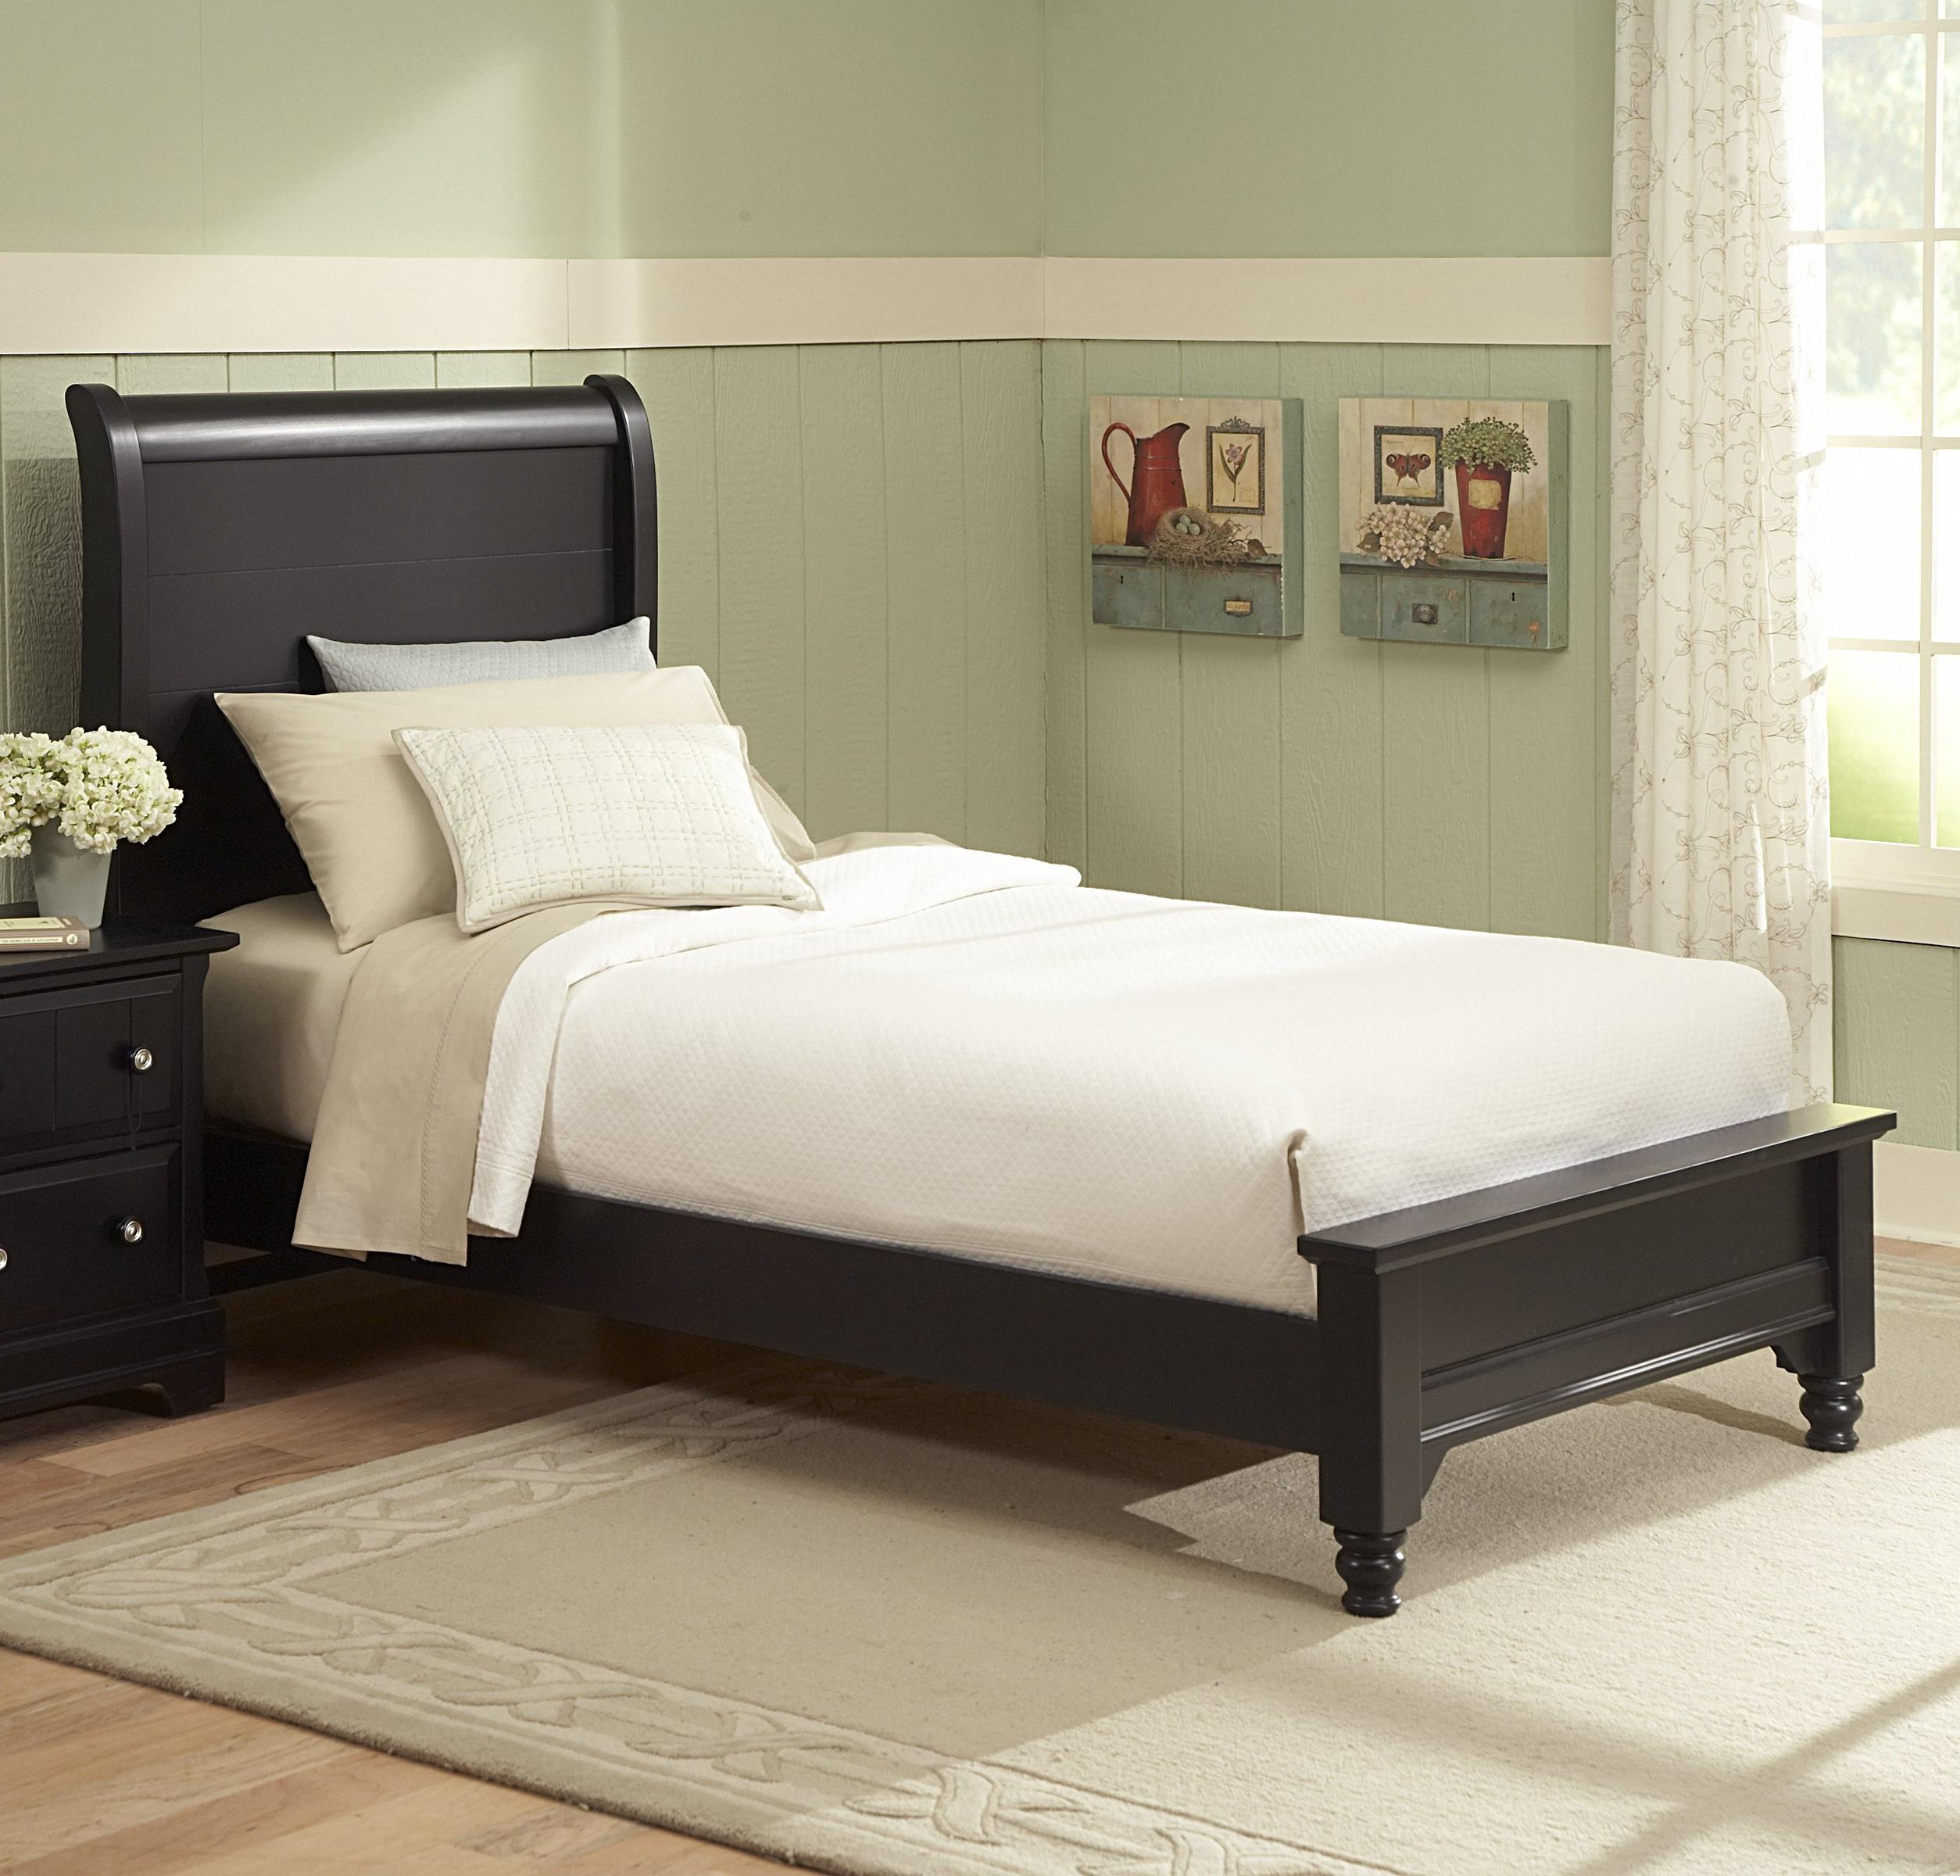 Vaughan Bassett Cottage Full Sleigh Bed w/ Low Footboard  - Item Number: BB16-441+144+911